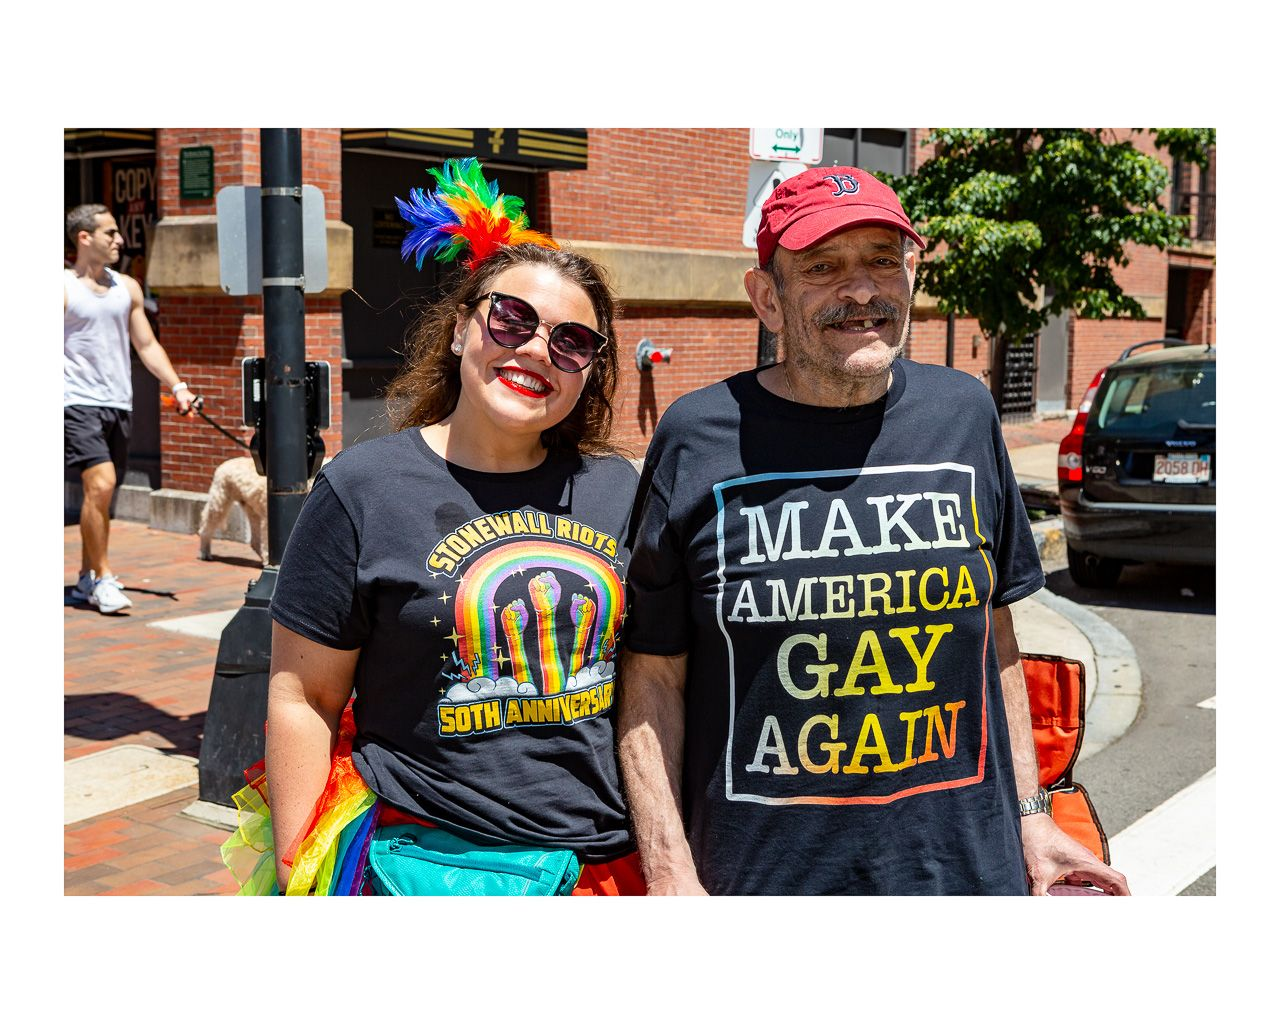 Boston Pride 2019 - wht border - Livebooks20190608 - 03.jpg